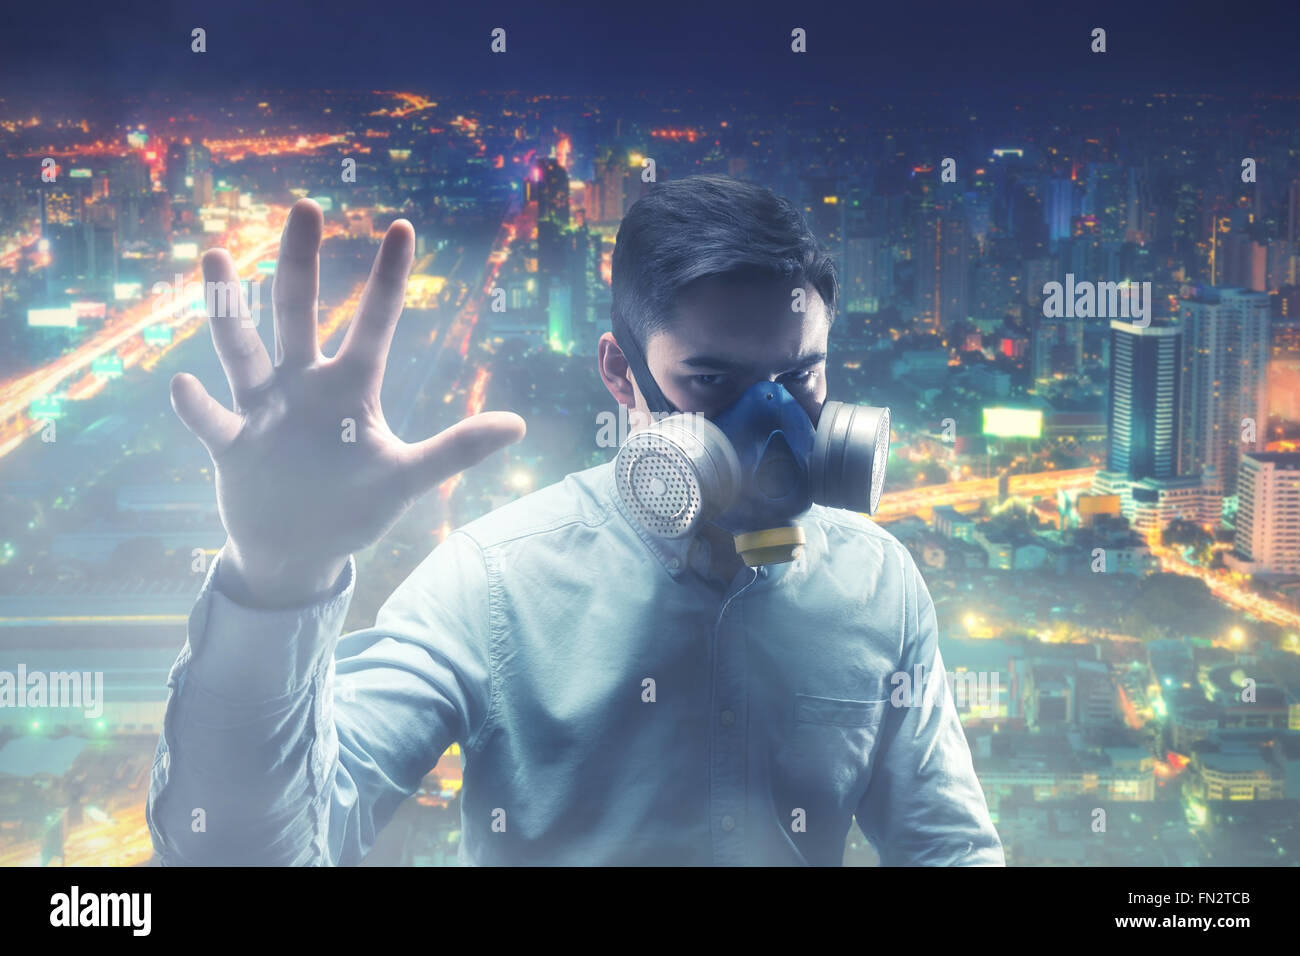 Young man in gas-mask - Stock Image